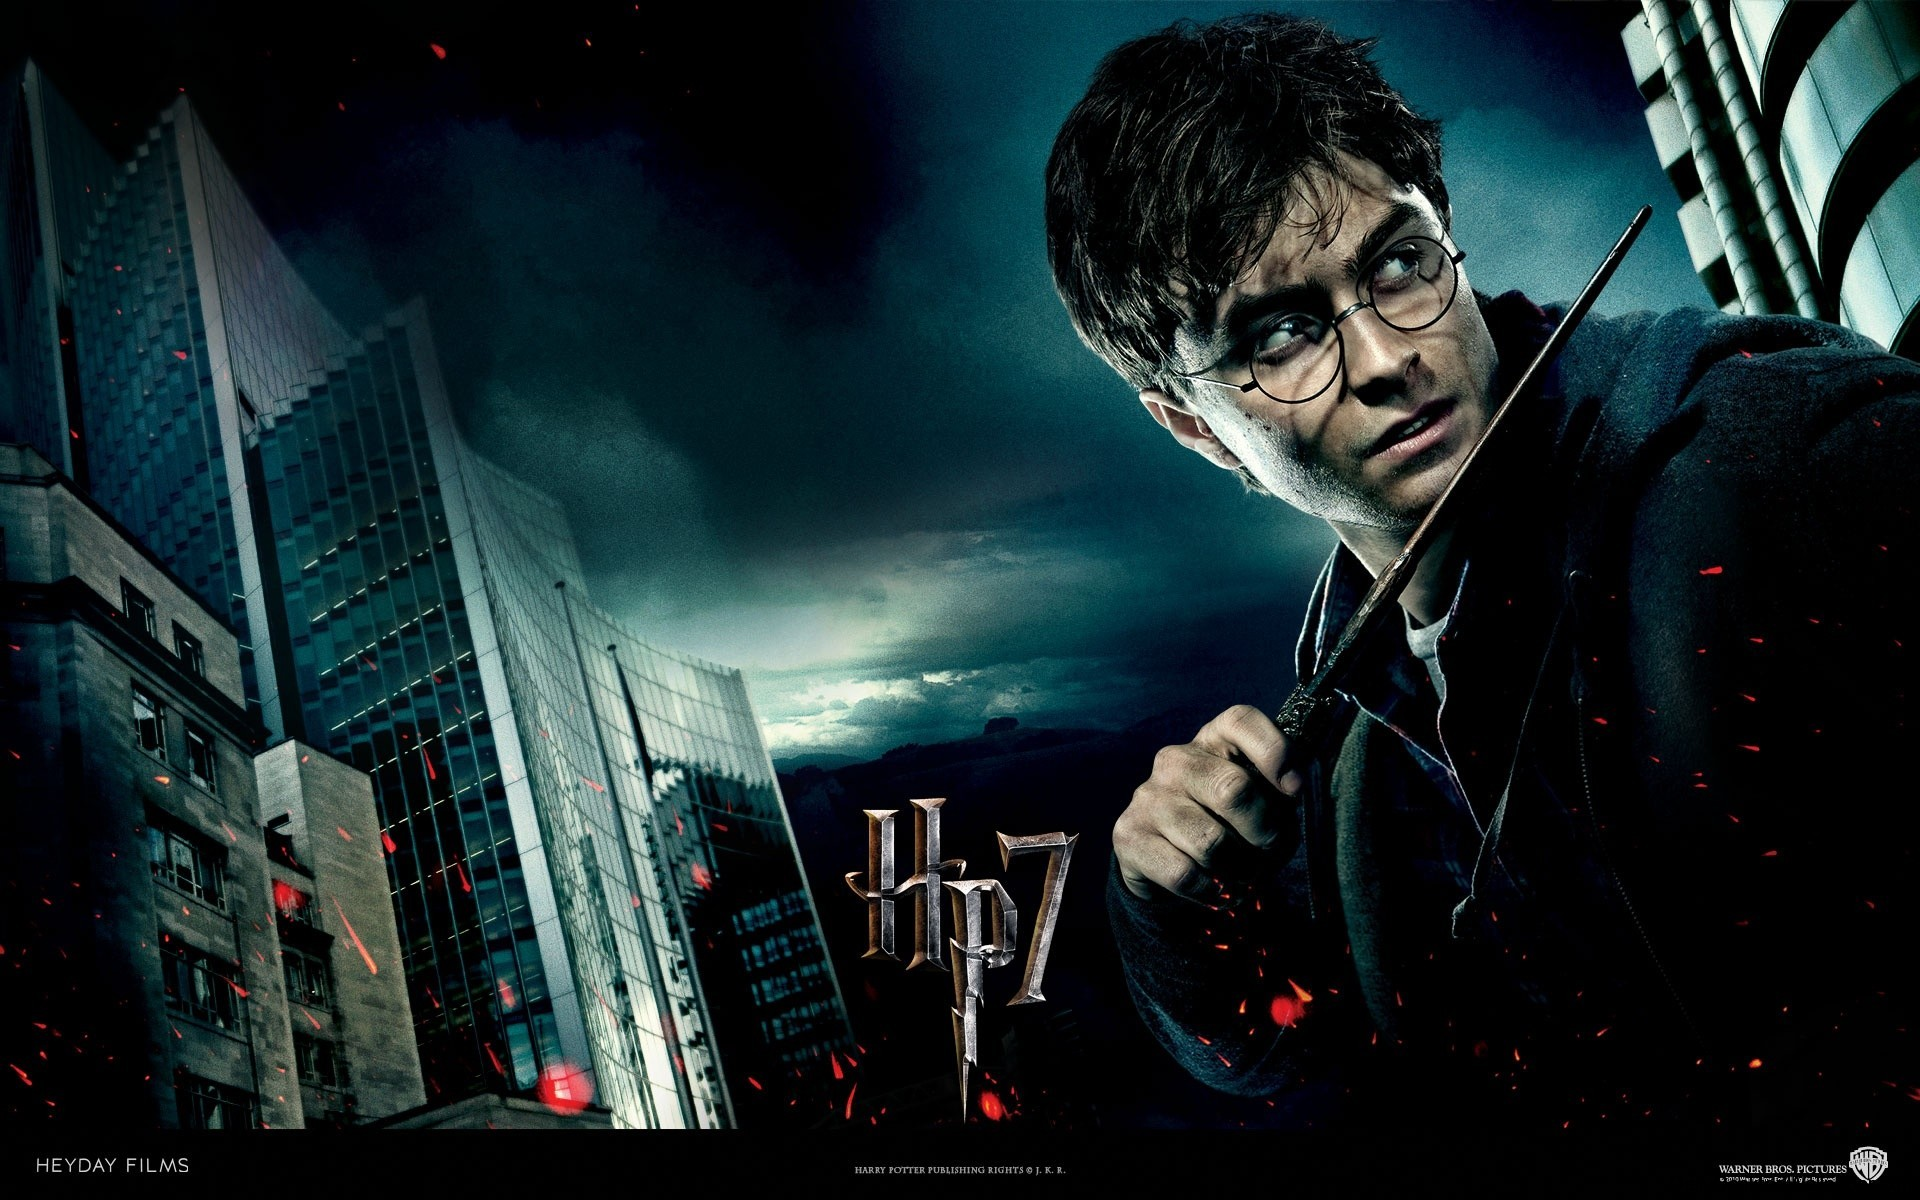 Harry potter 7 wallpaper hd wallpapers harry potter 7 wallpaper voltagebd Image collections